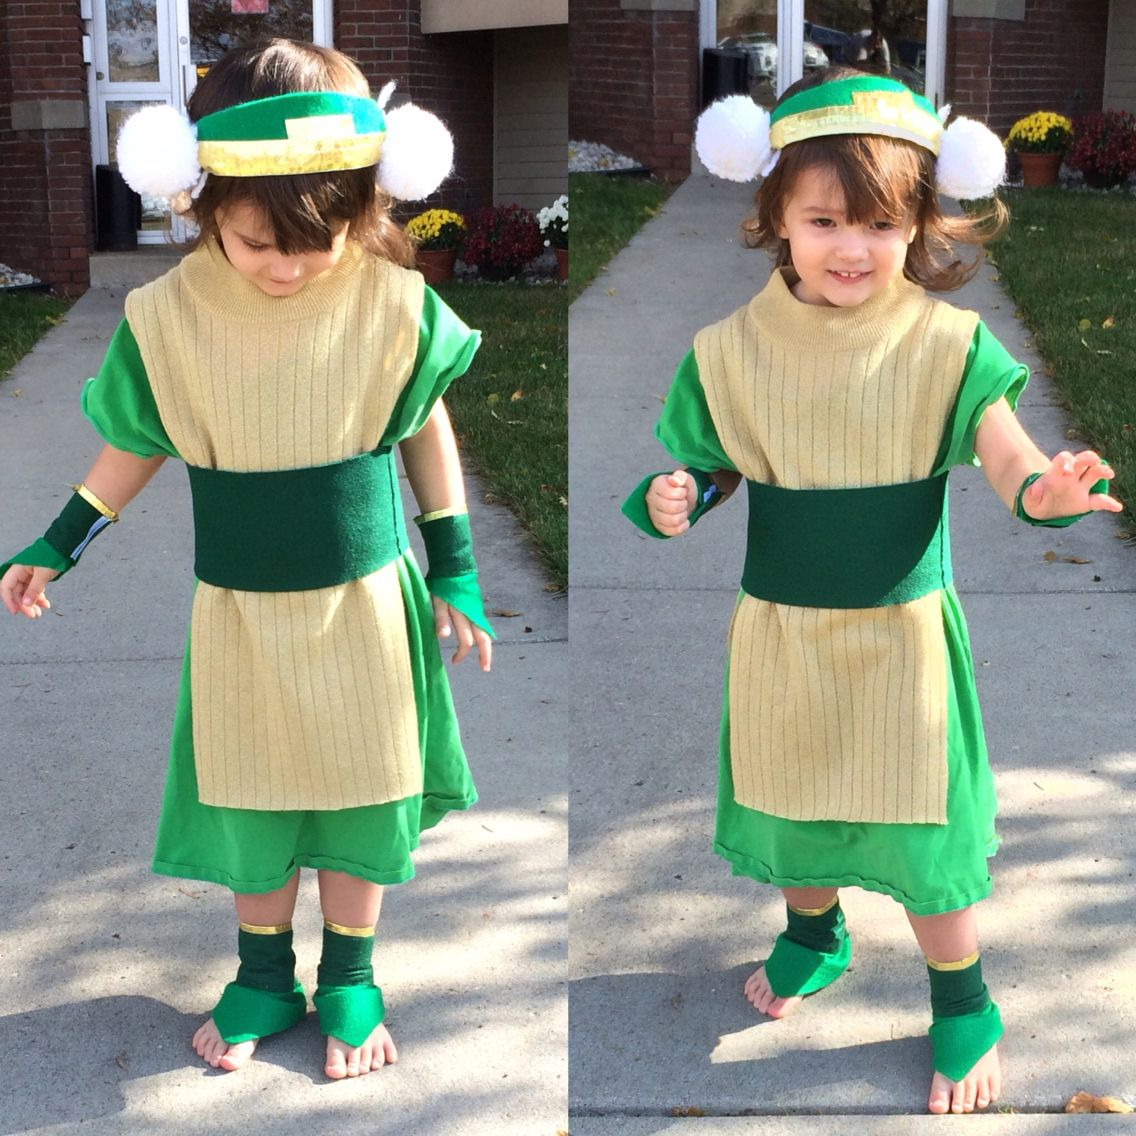 Toph costume for Halloween #avatarthelastairbender  sc 1 st  Pinterest & Toph costume for Halloween #avatarthelastairbender | Avatar The last ...